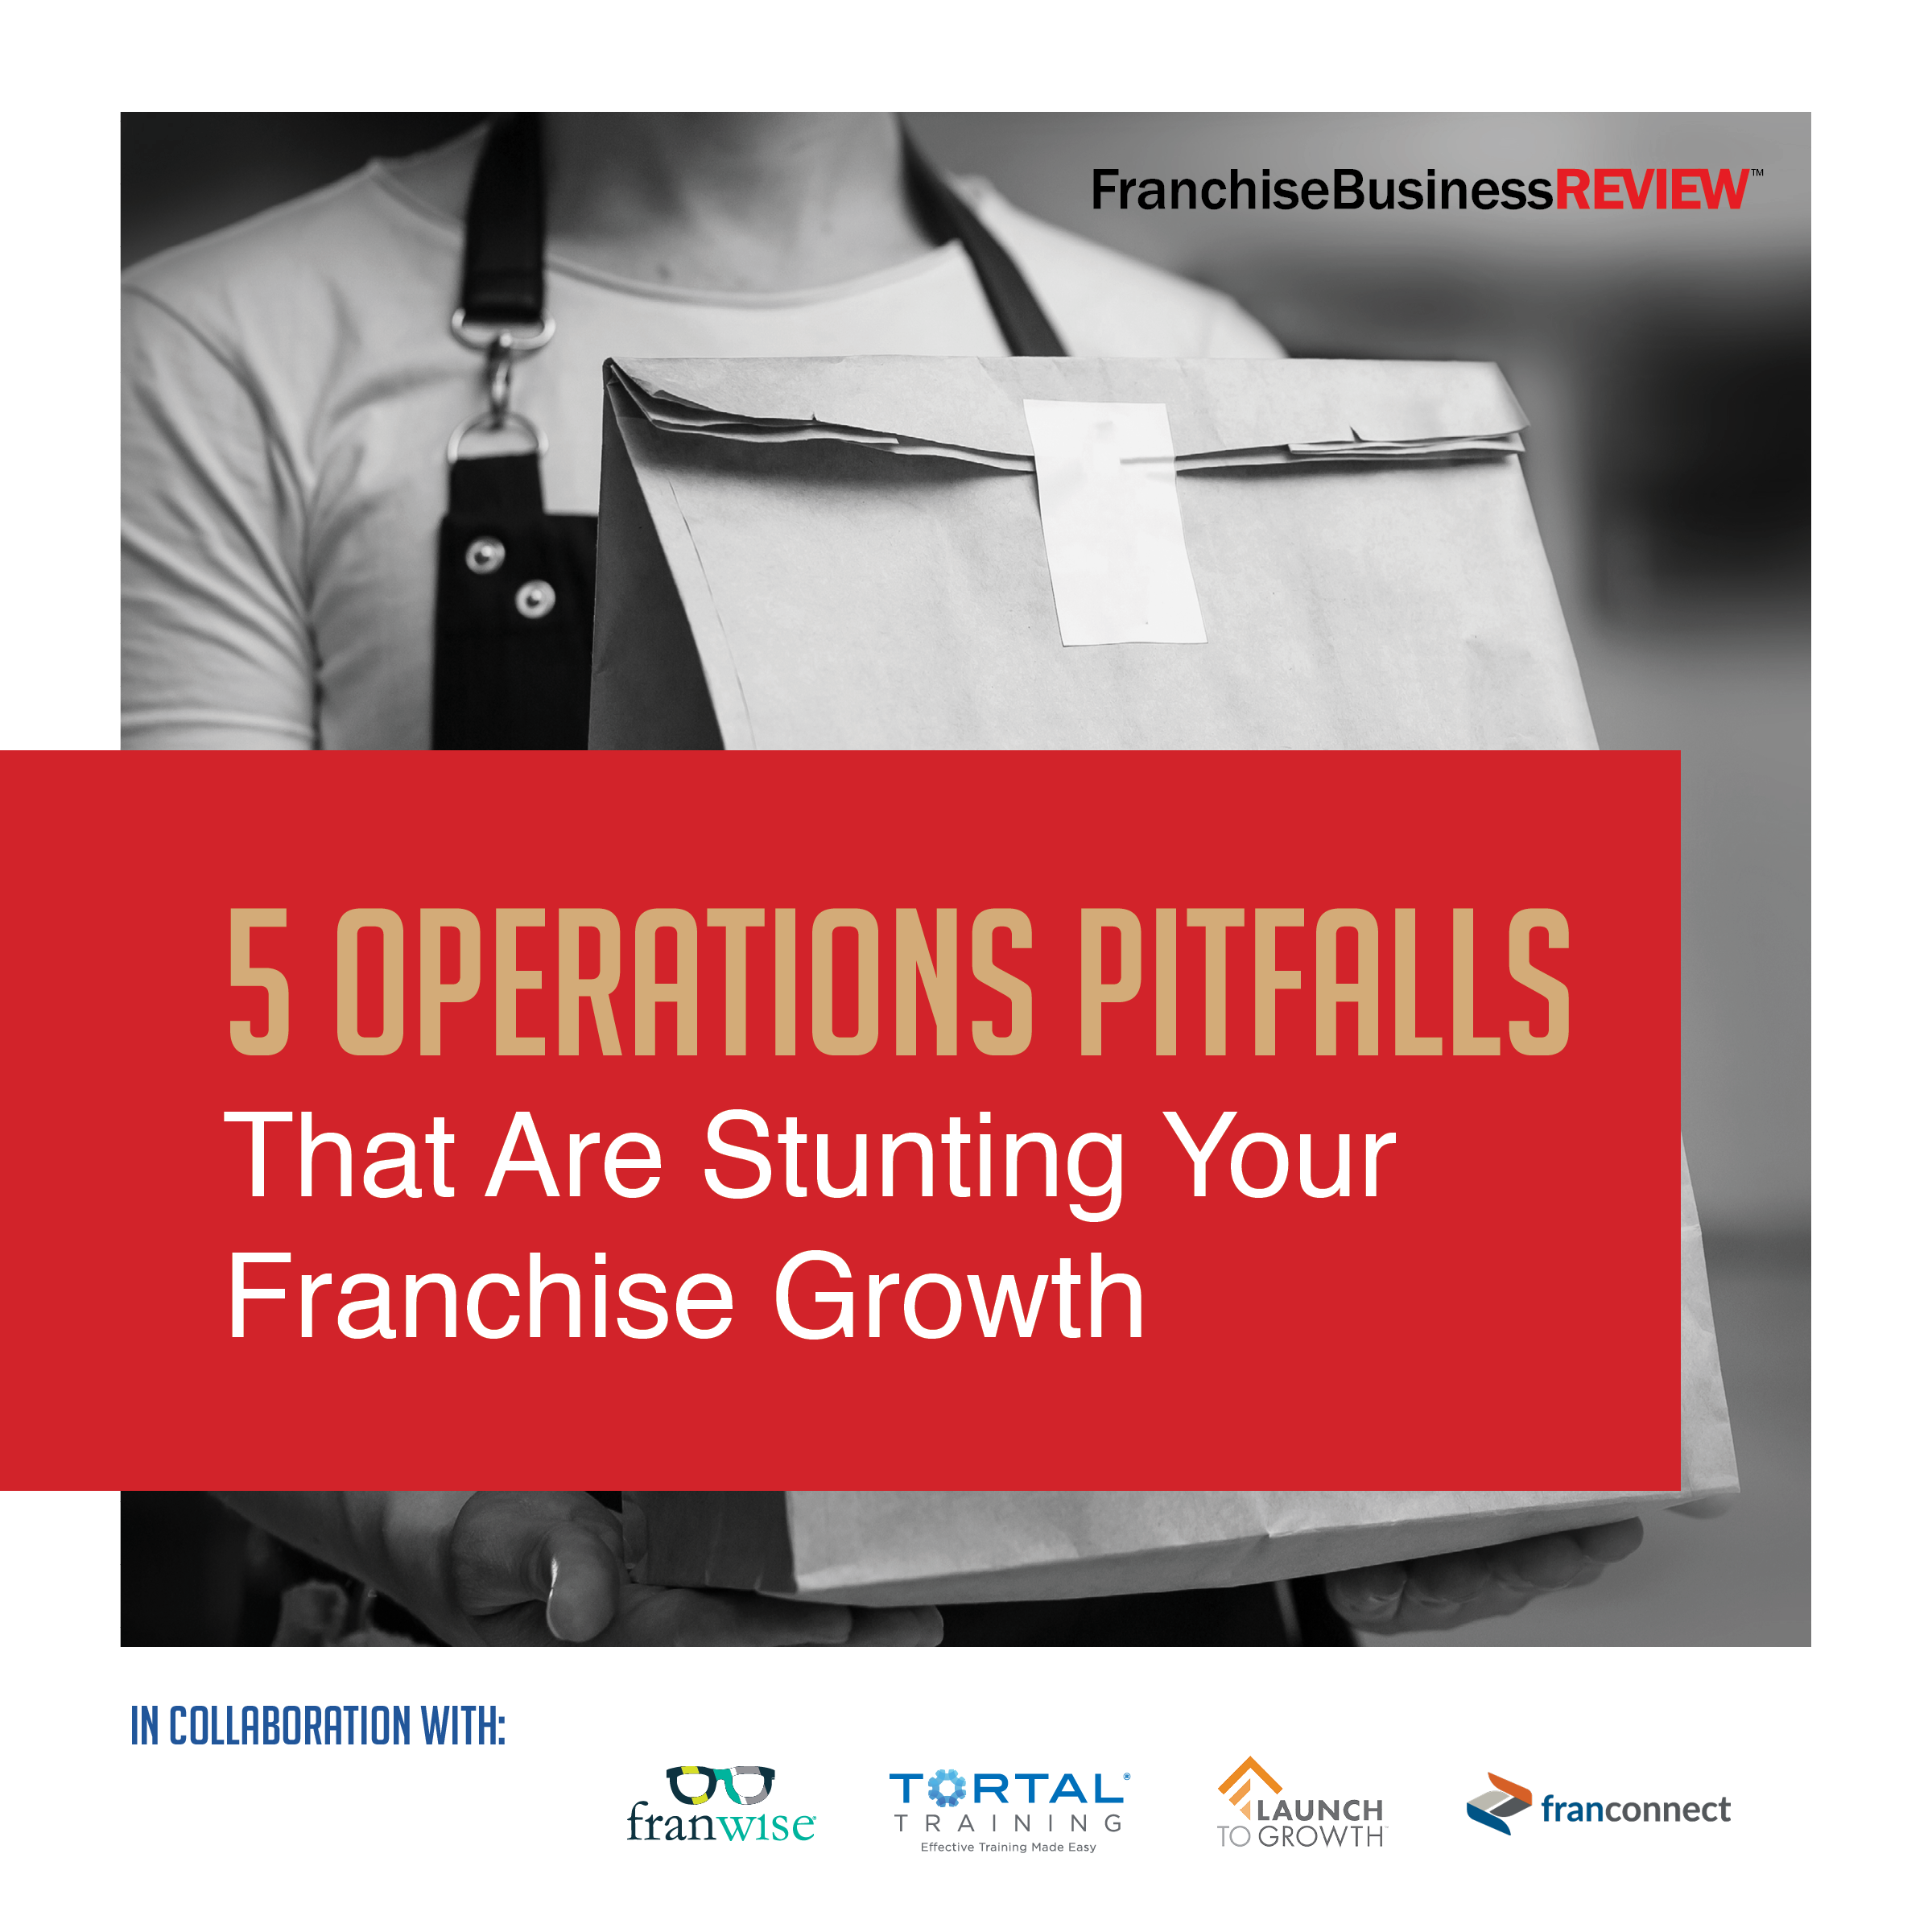 5 Operations Pitfalls That Are Stunting Your Franchise Growth